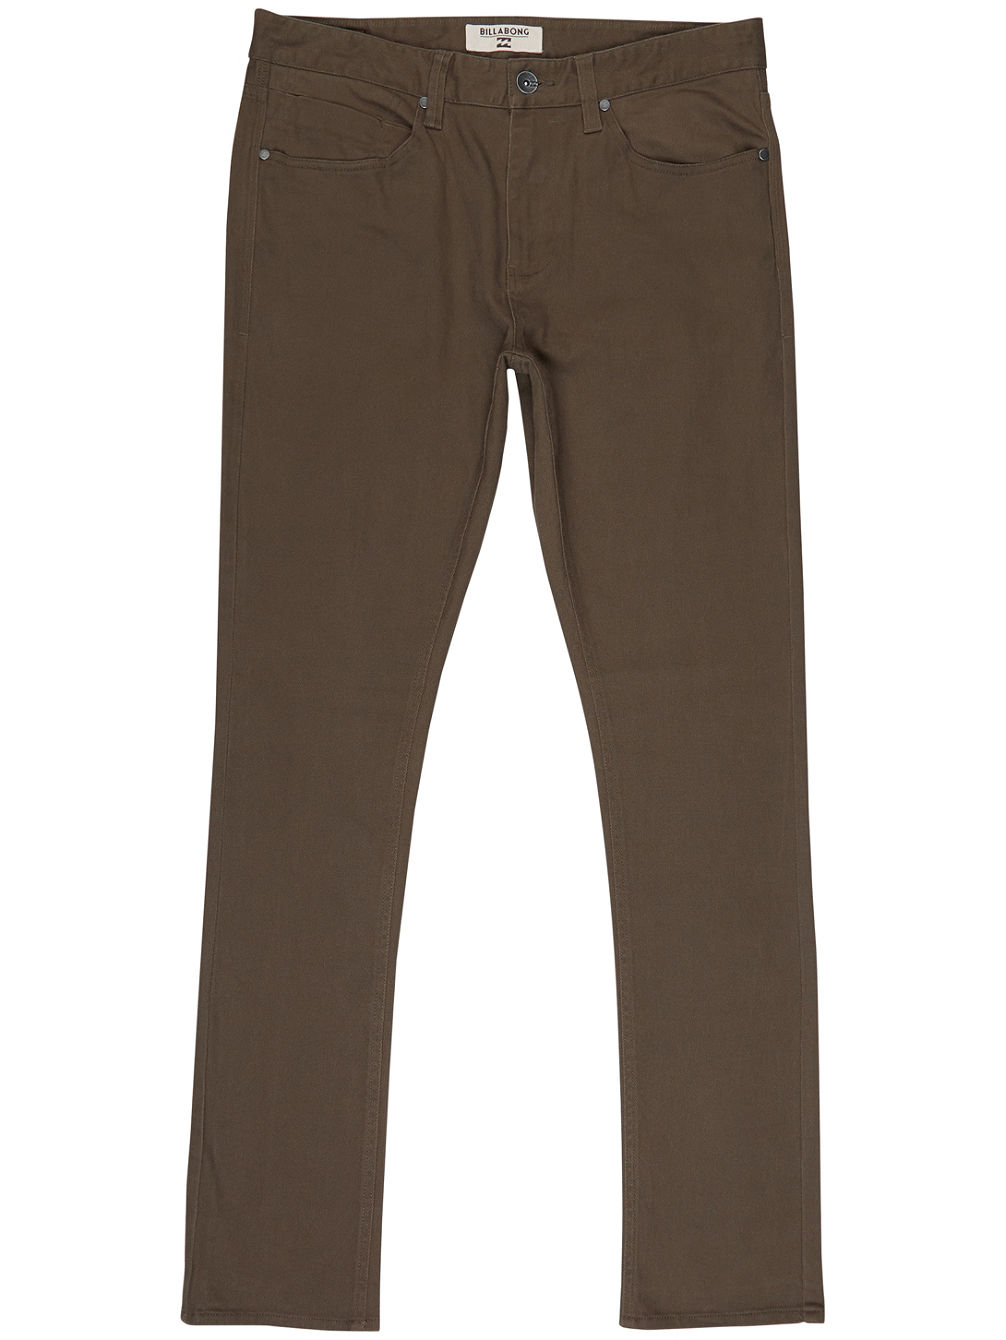 Outsider Twill Pants